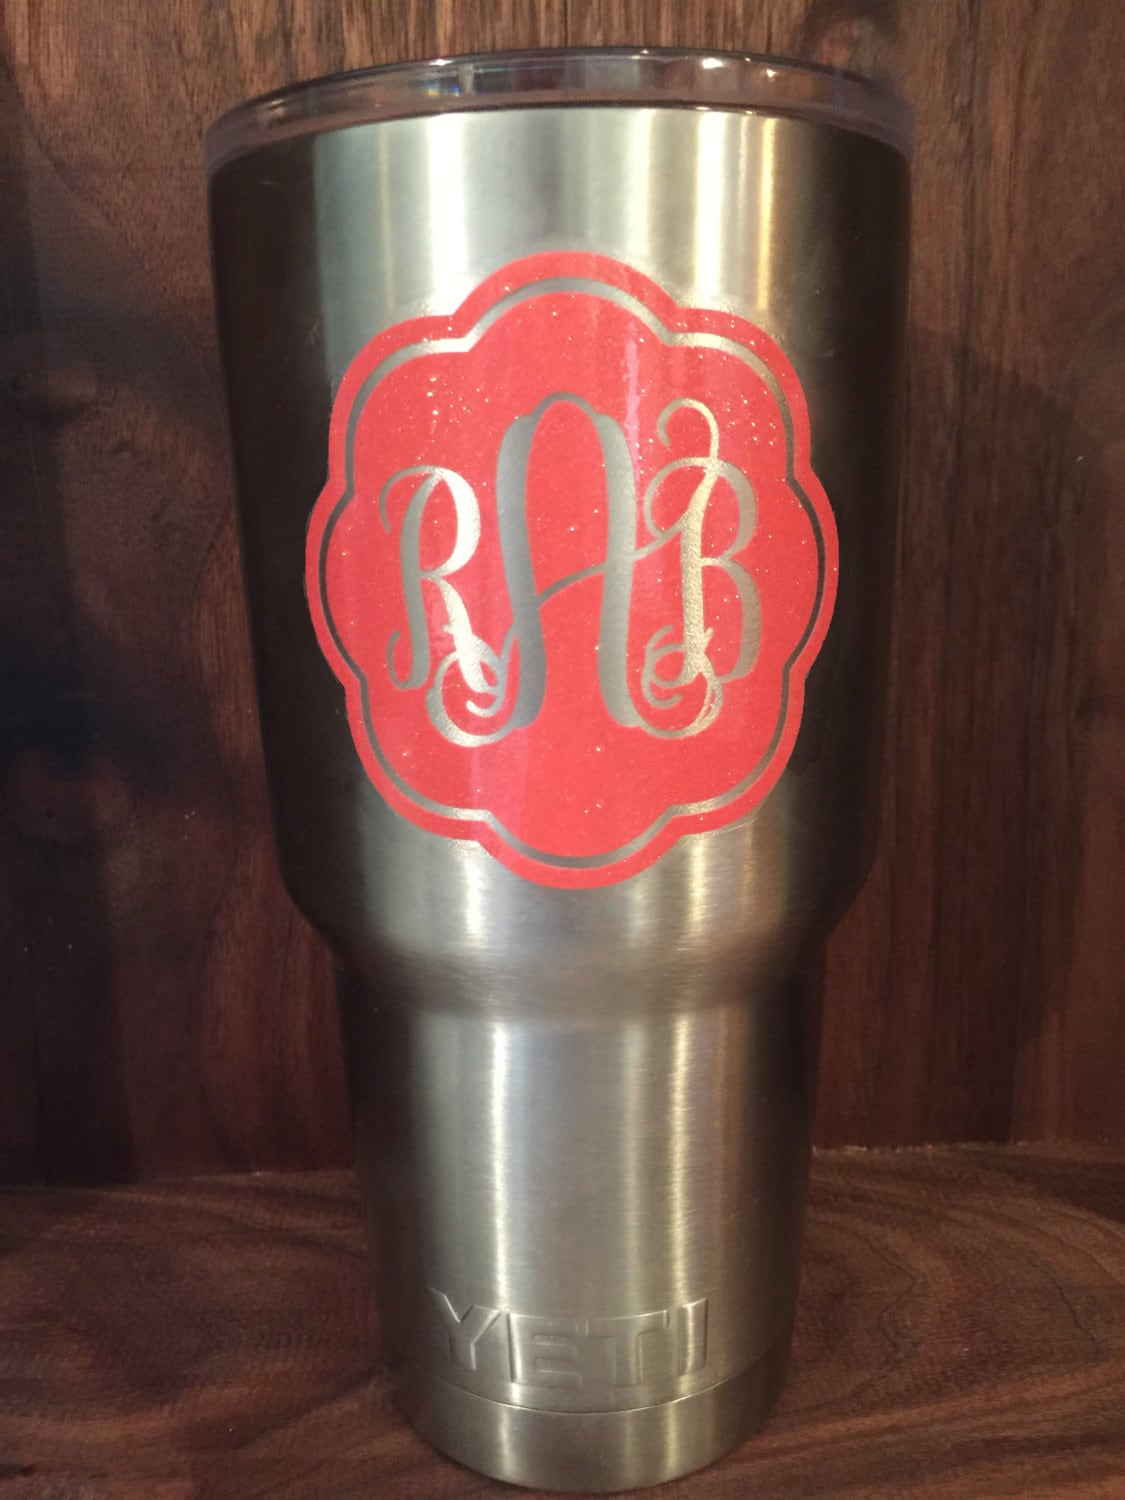 Fancy Monogram Decal Yeti Tumbler Decal Elegant Yeti Decal